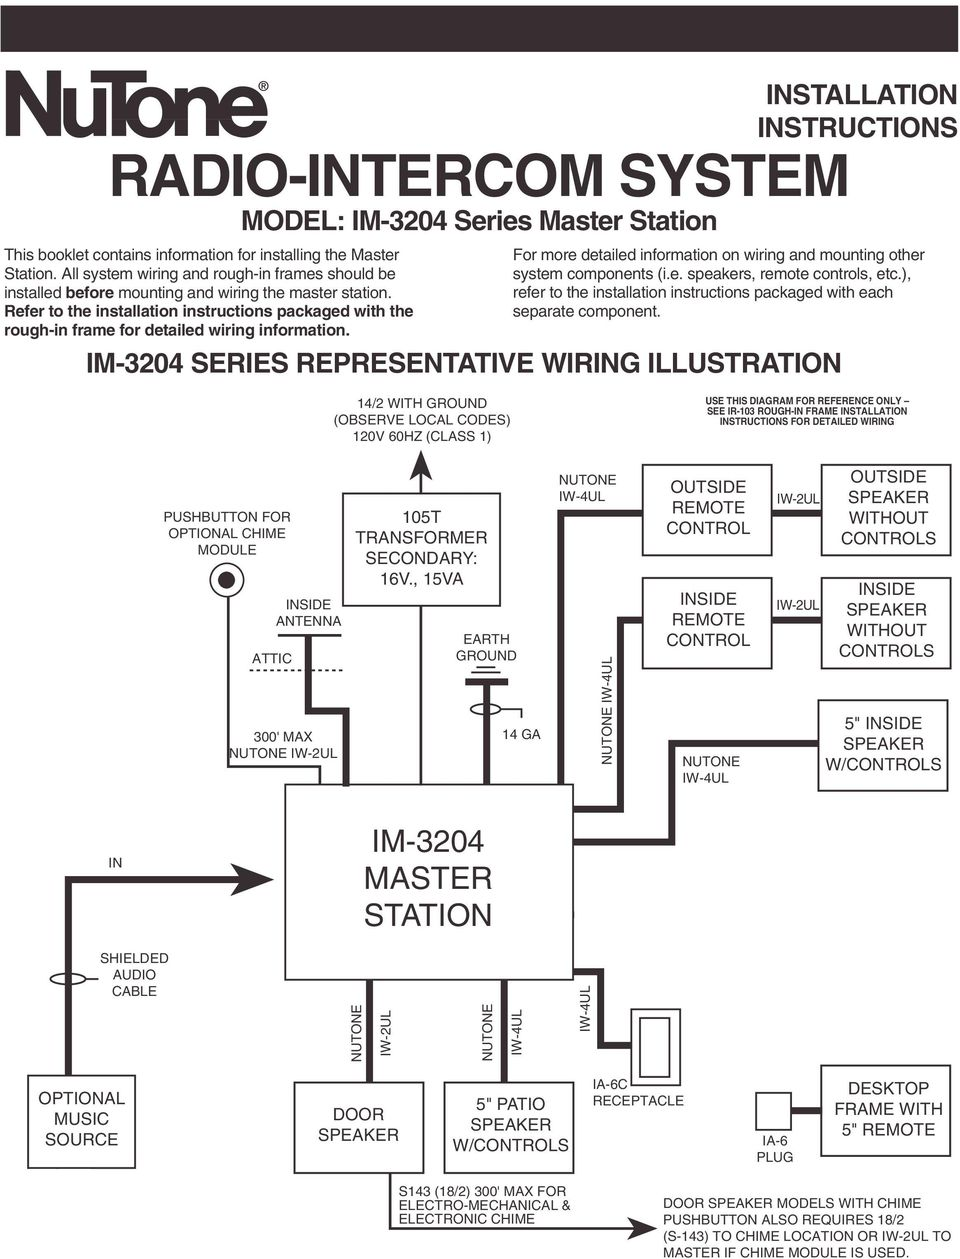 RADIO-INTERCOM SYSTEM - PDF Free Download on redman mobile home wiring diagram, alarm wiring diagram, doorbell installation diagram, dryer wiring diagram, smoke detectors wiring diagram, generac generator wiring diagram, washer wiring diagram, intercom connection diagram, doorbell transformer wiring diagram, central vacuum wiring diagram, nutone 3303 master station manual, nutone clock door chime wiring-diagram, security camera wiring diagram, broan wiring diagram, nutone door bell installation, central vac wiring diagram,